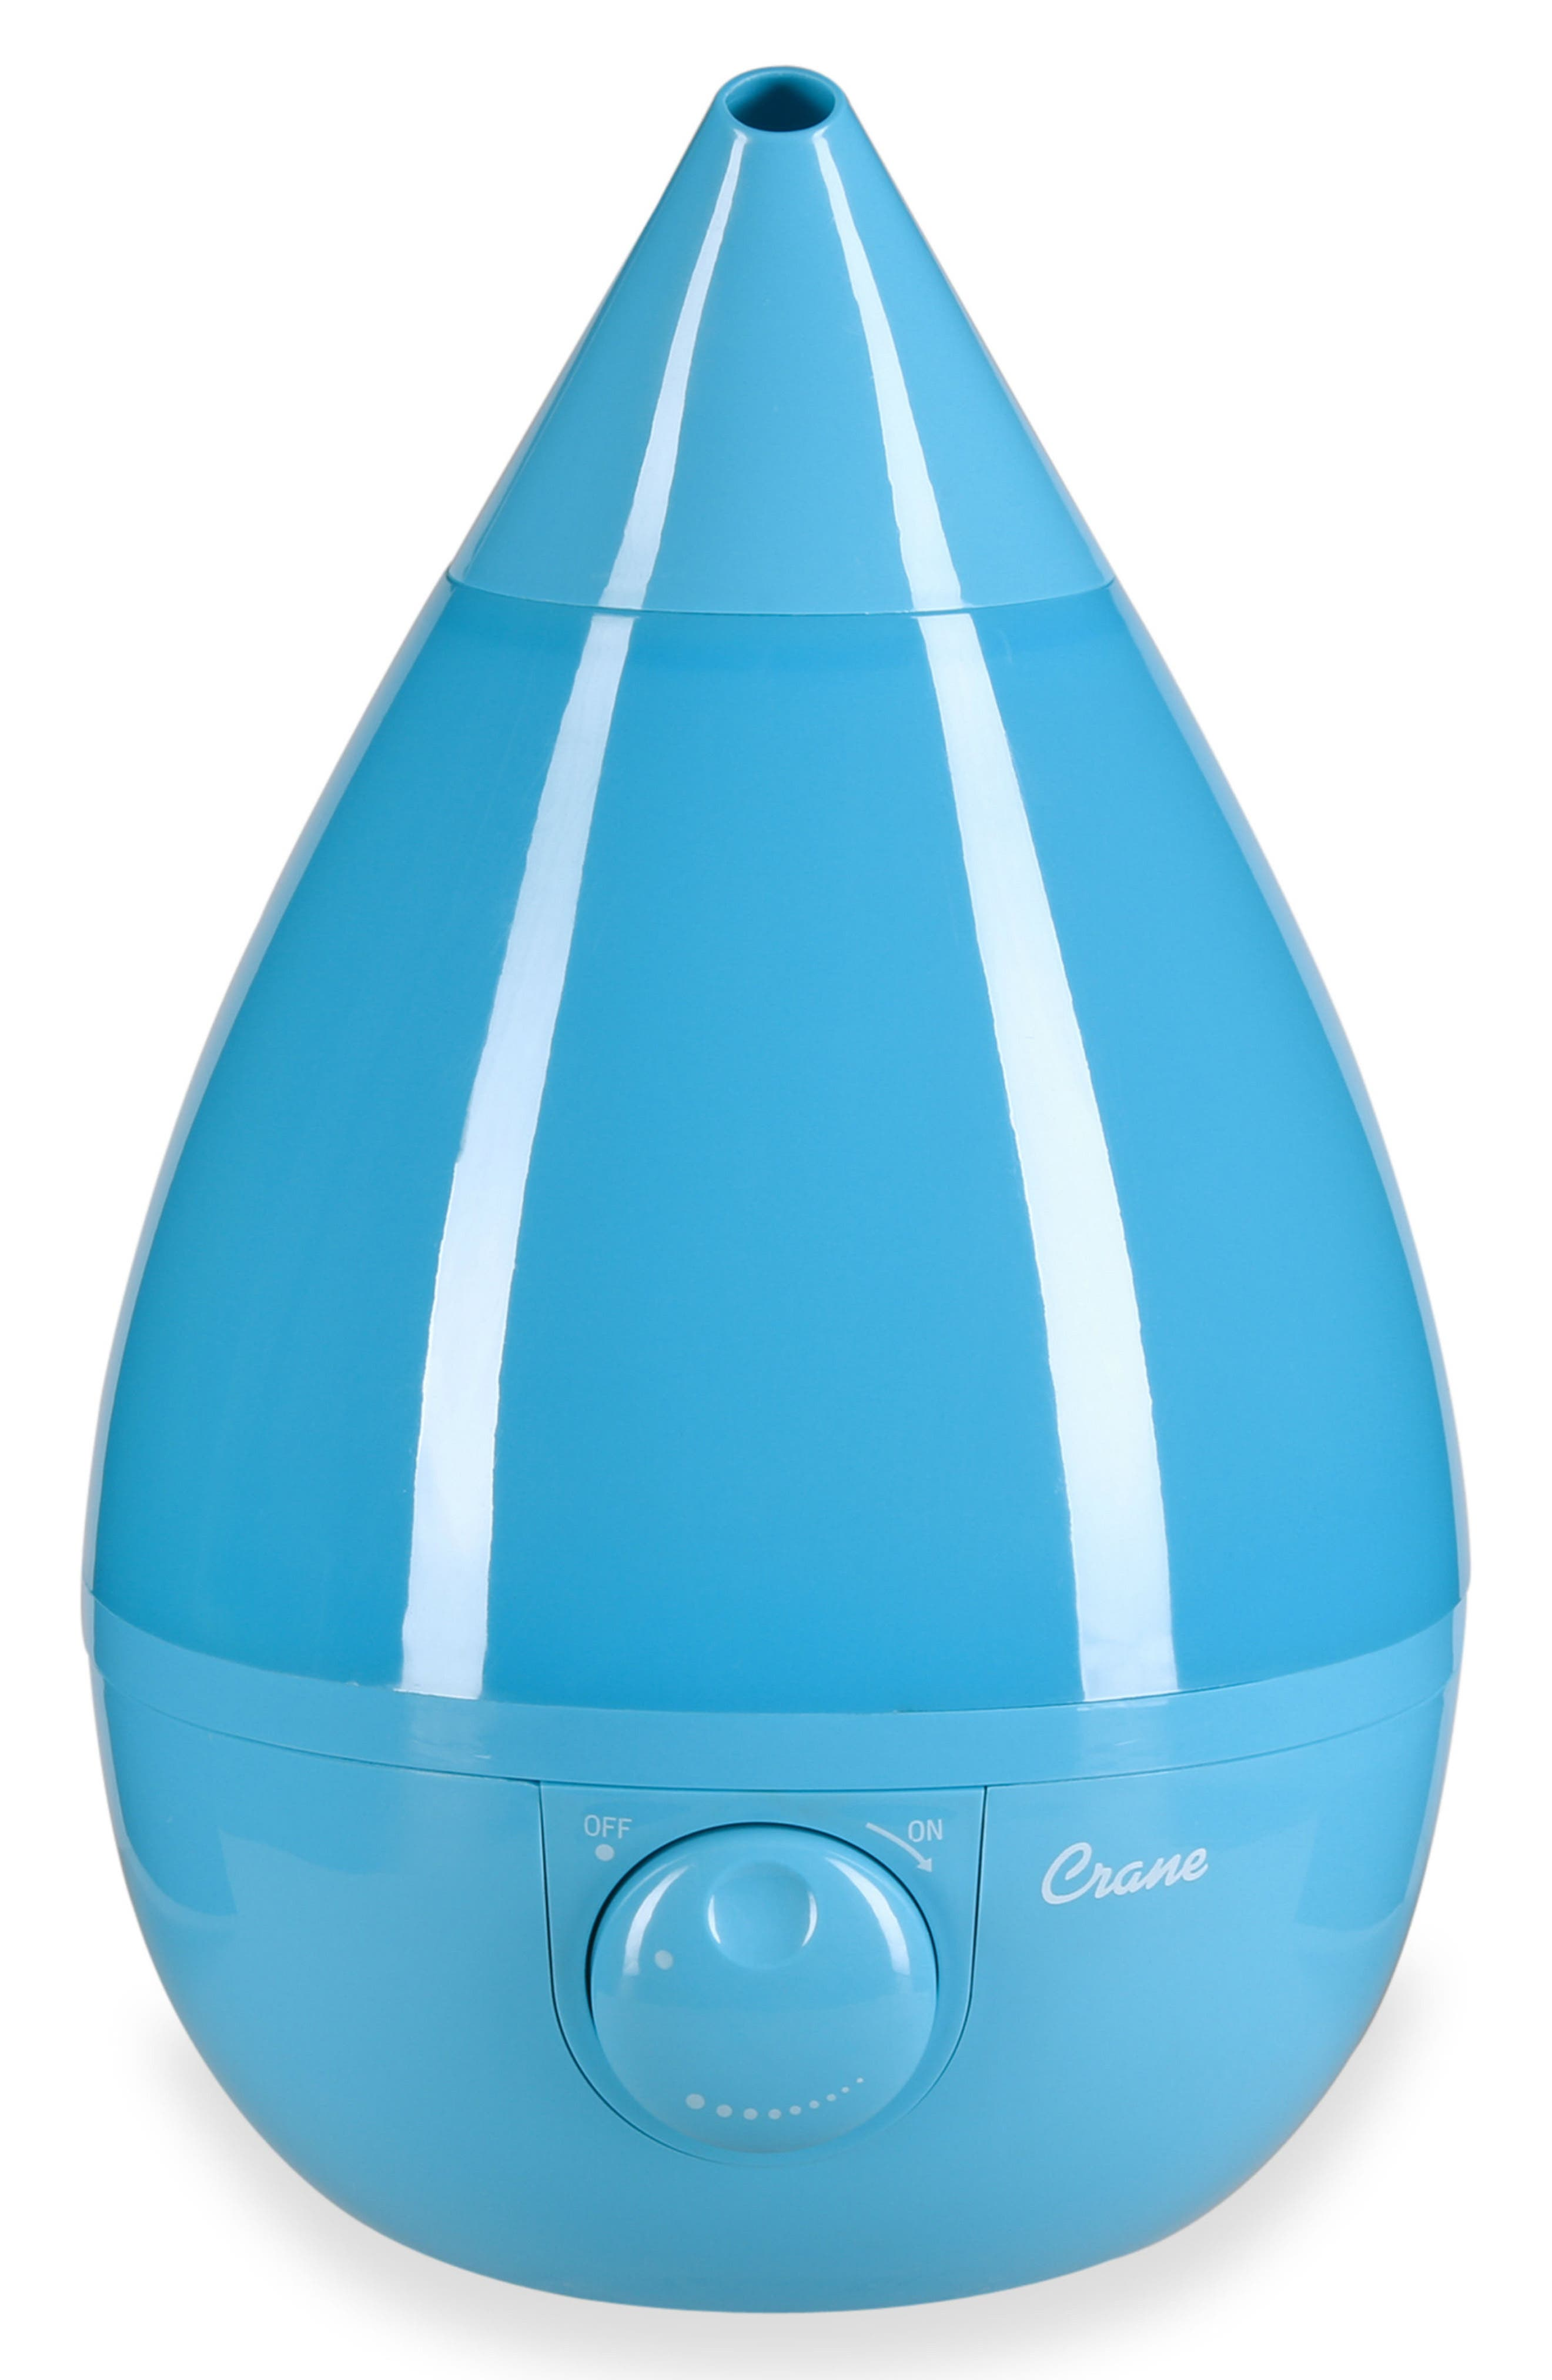 Crane Air 'Drop' Humidifier